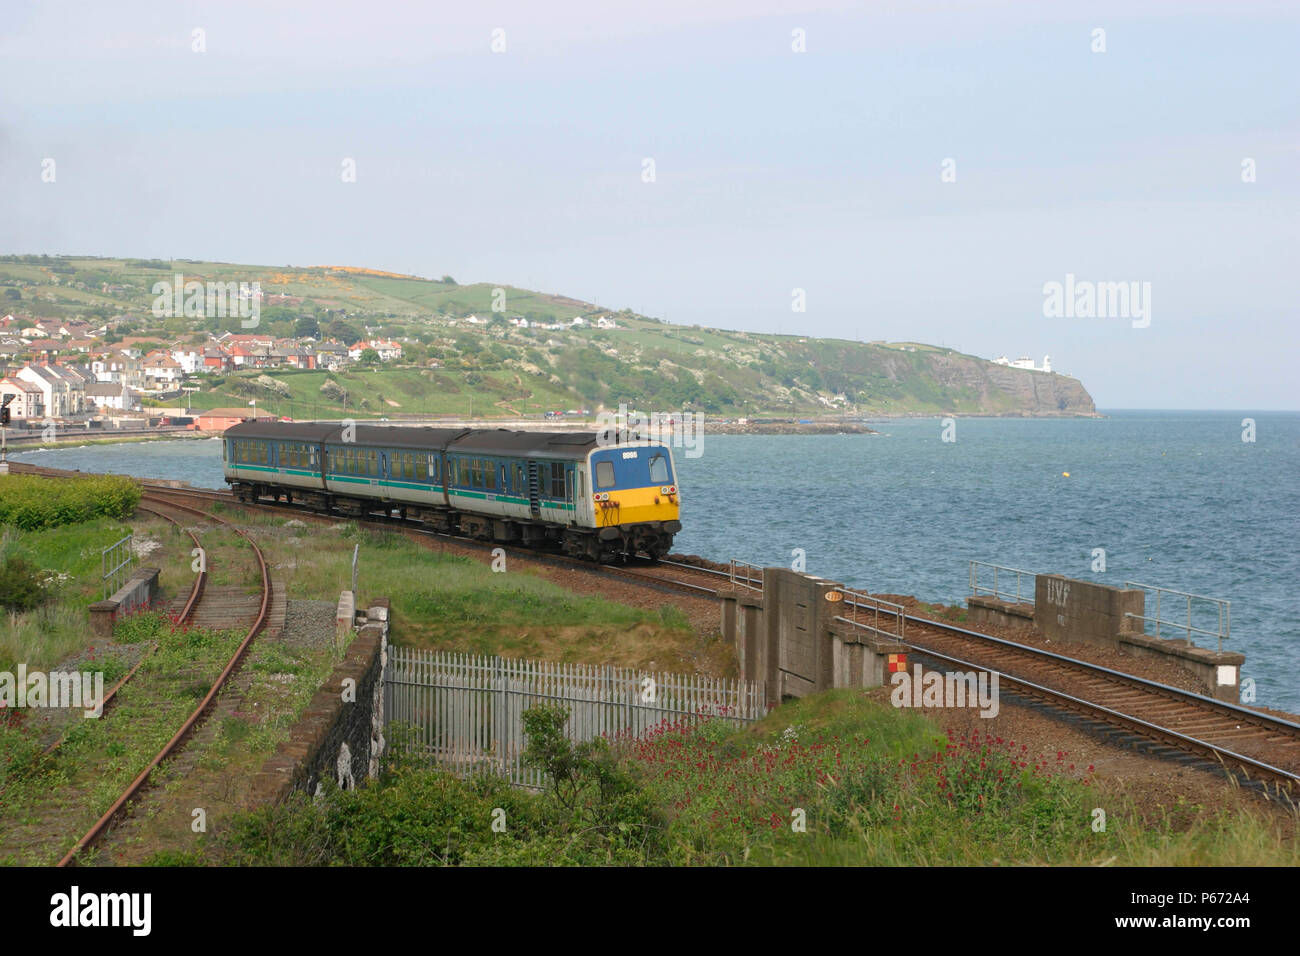 A service from Larne to Belfast skirts the coast at Whitemoor in County Antrim - Stock Image